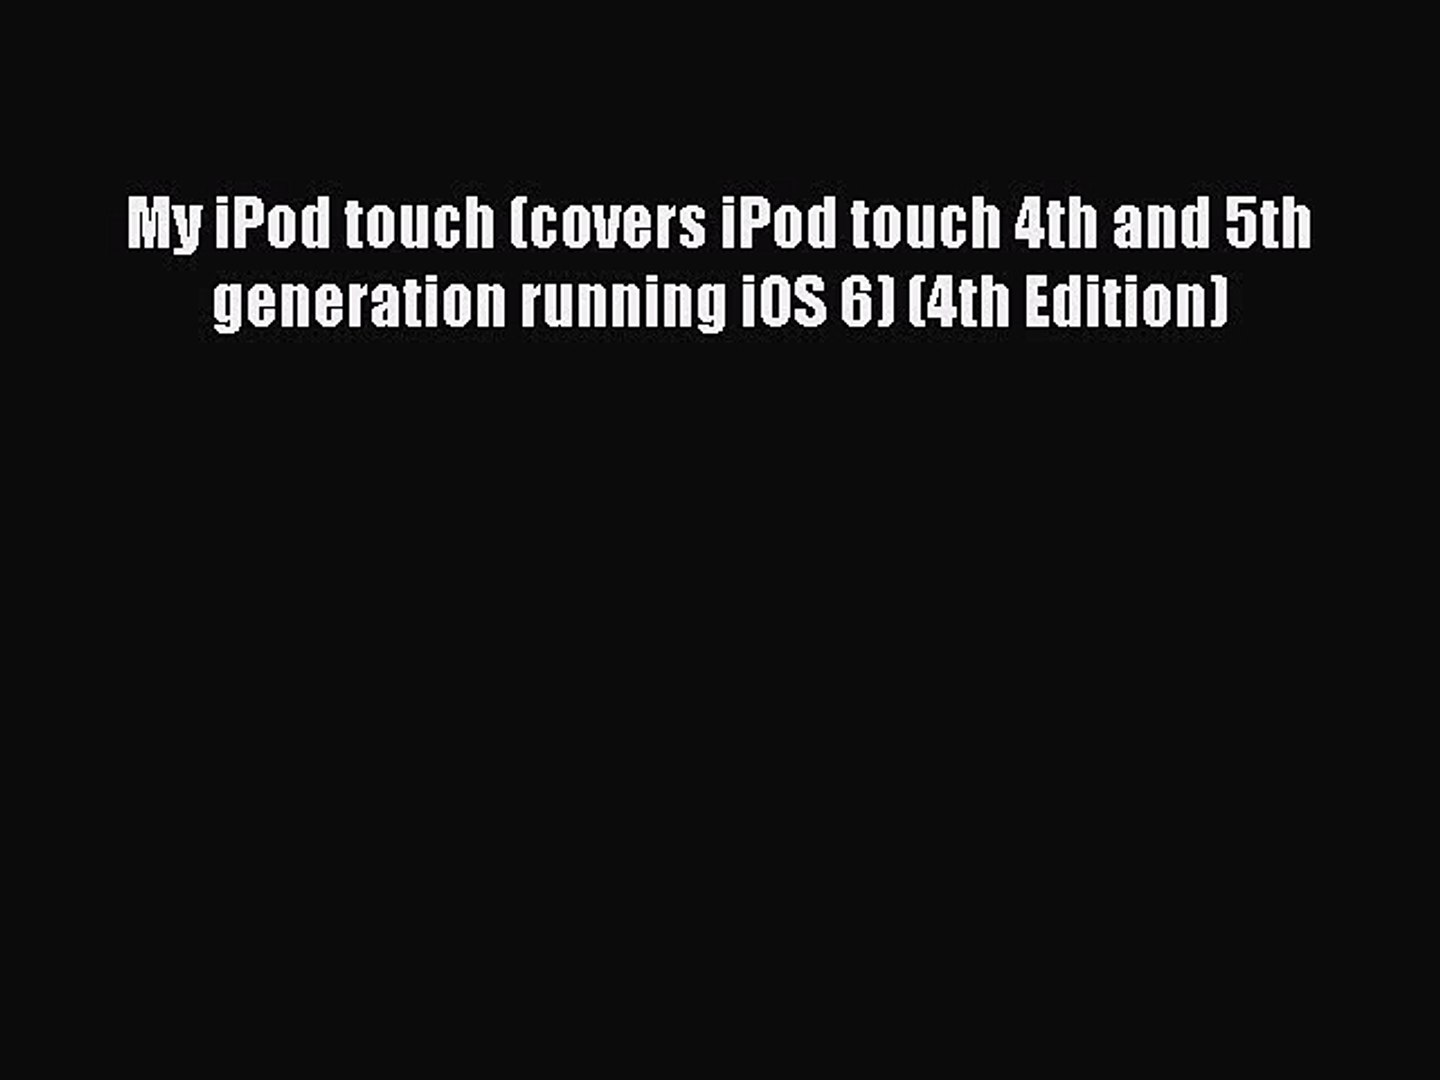 4th Edition My iPod touch covers iPod touch 4th and 5th generation running iOS 6